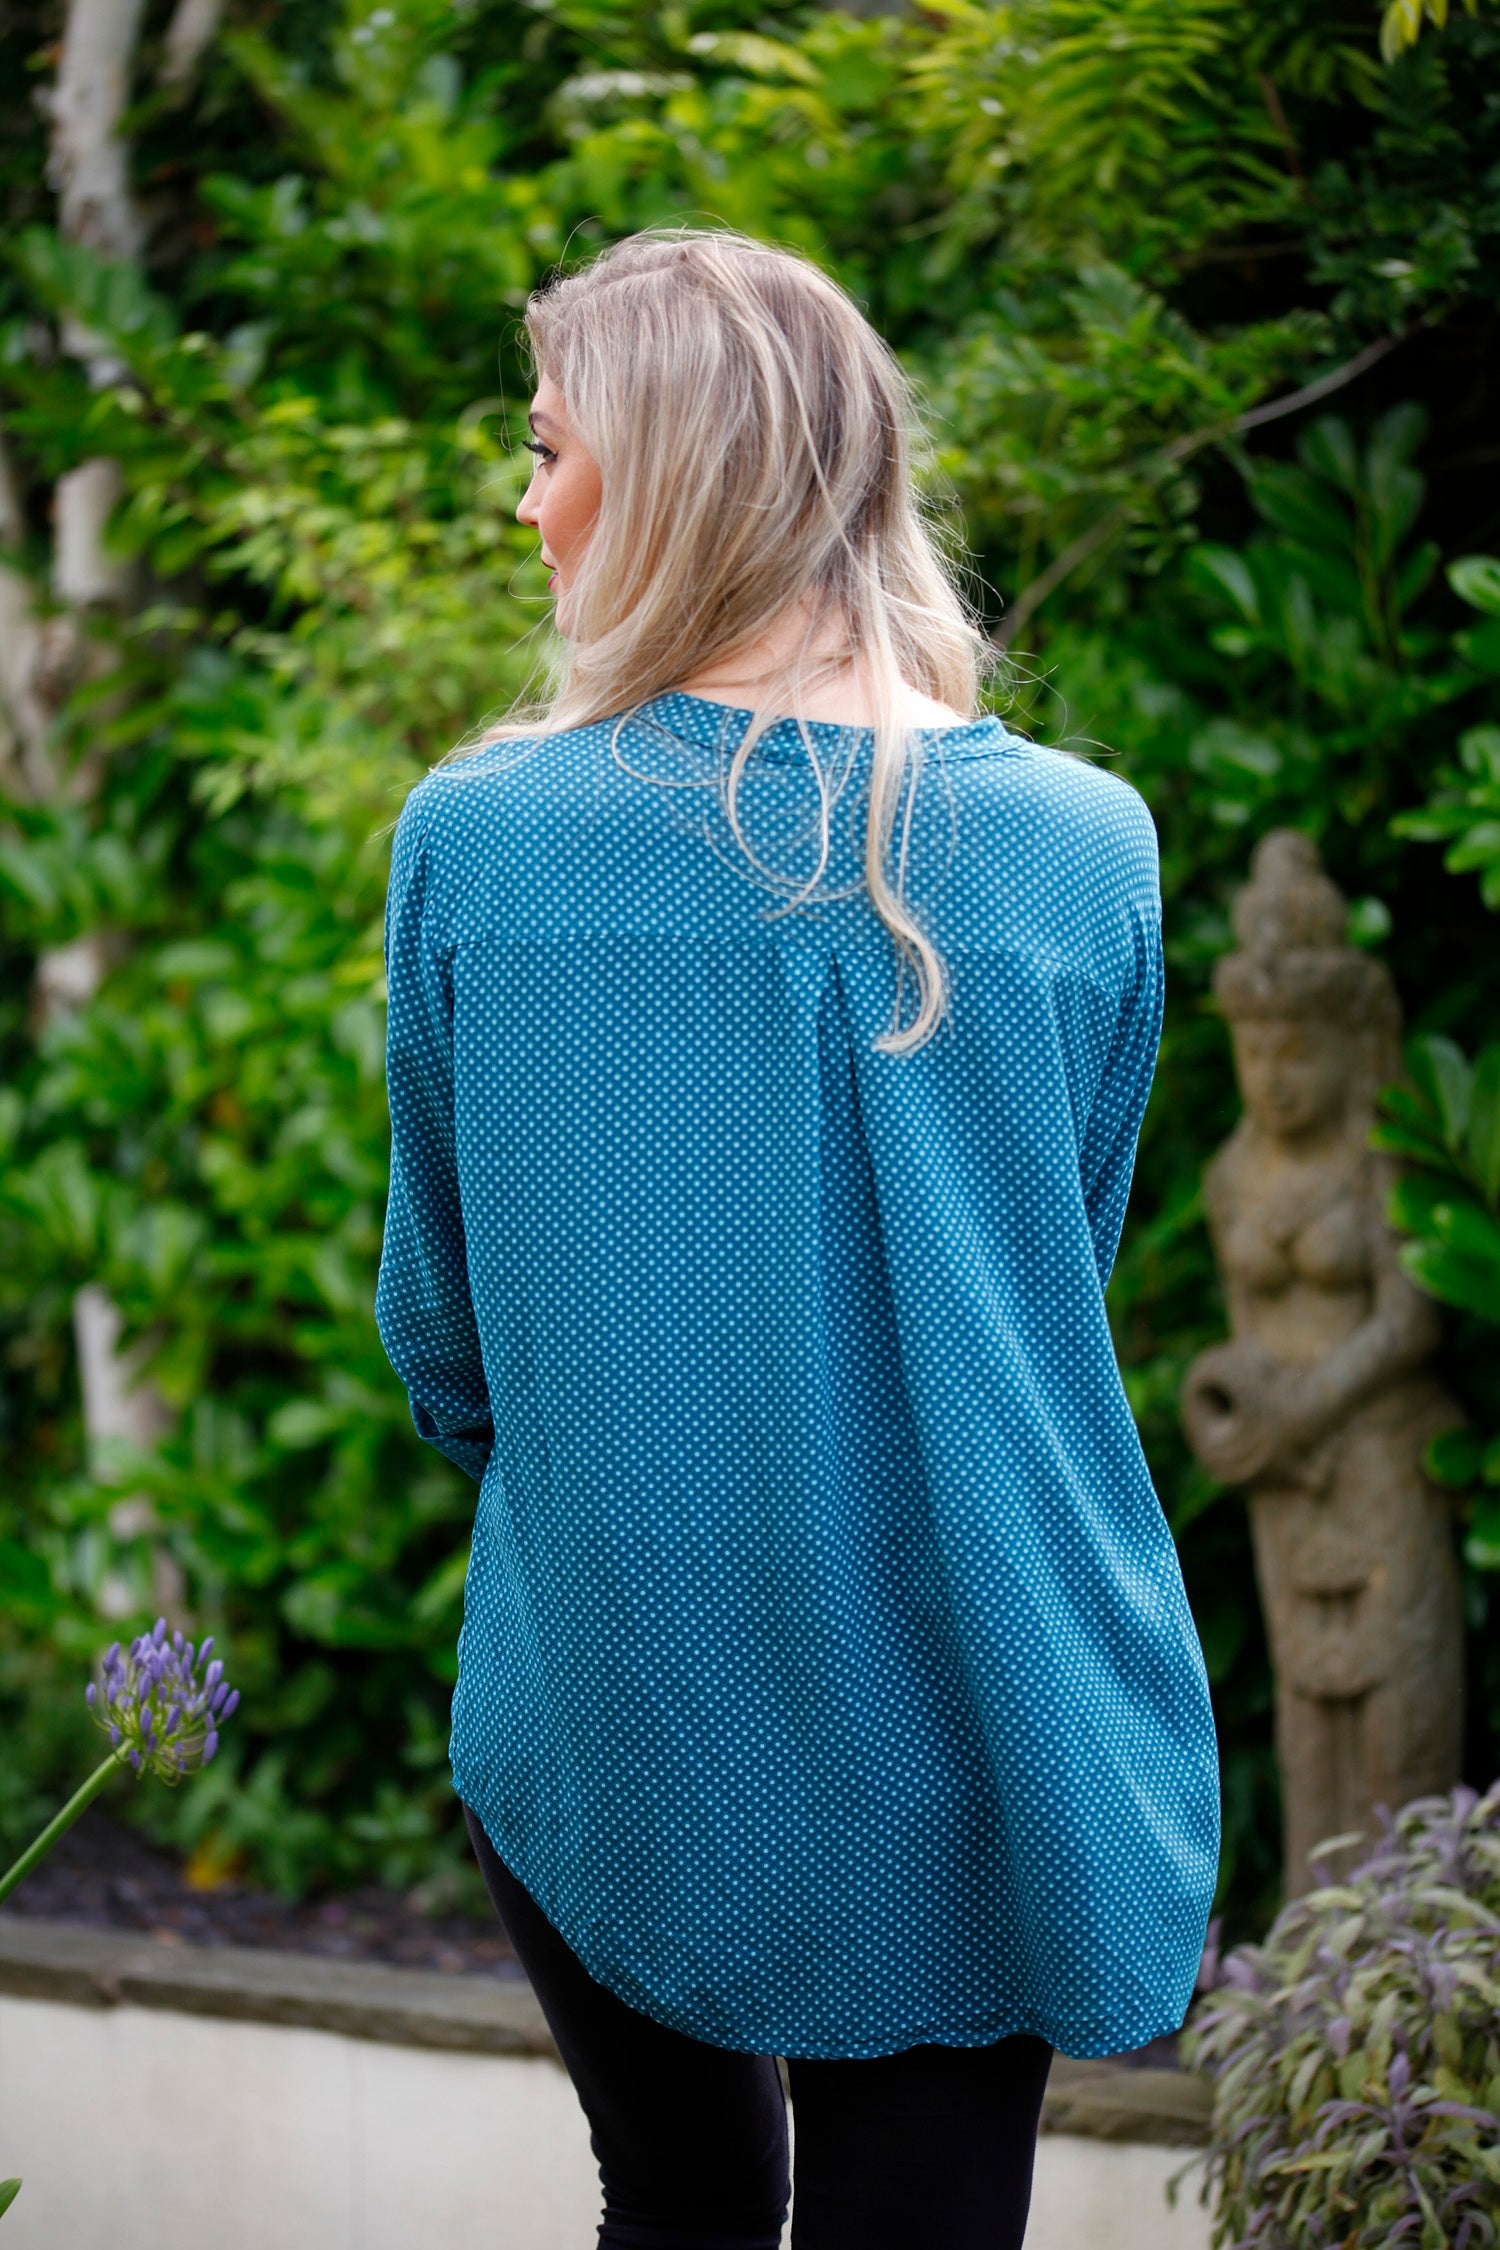 ladies teal blue shirt